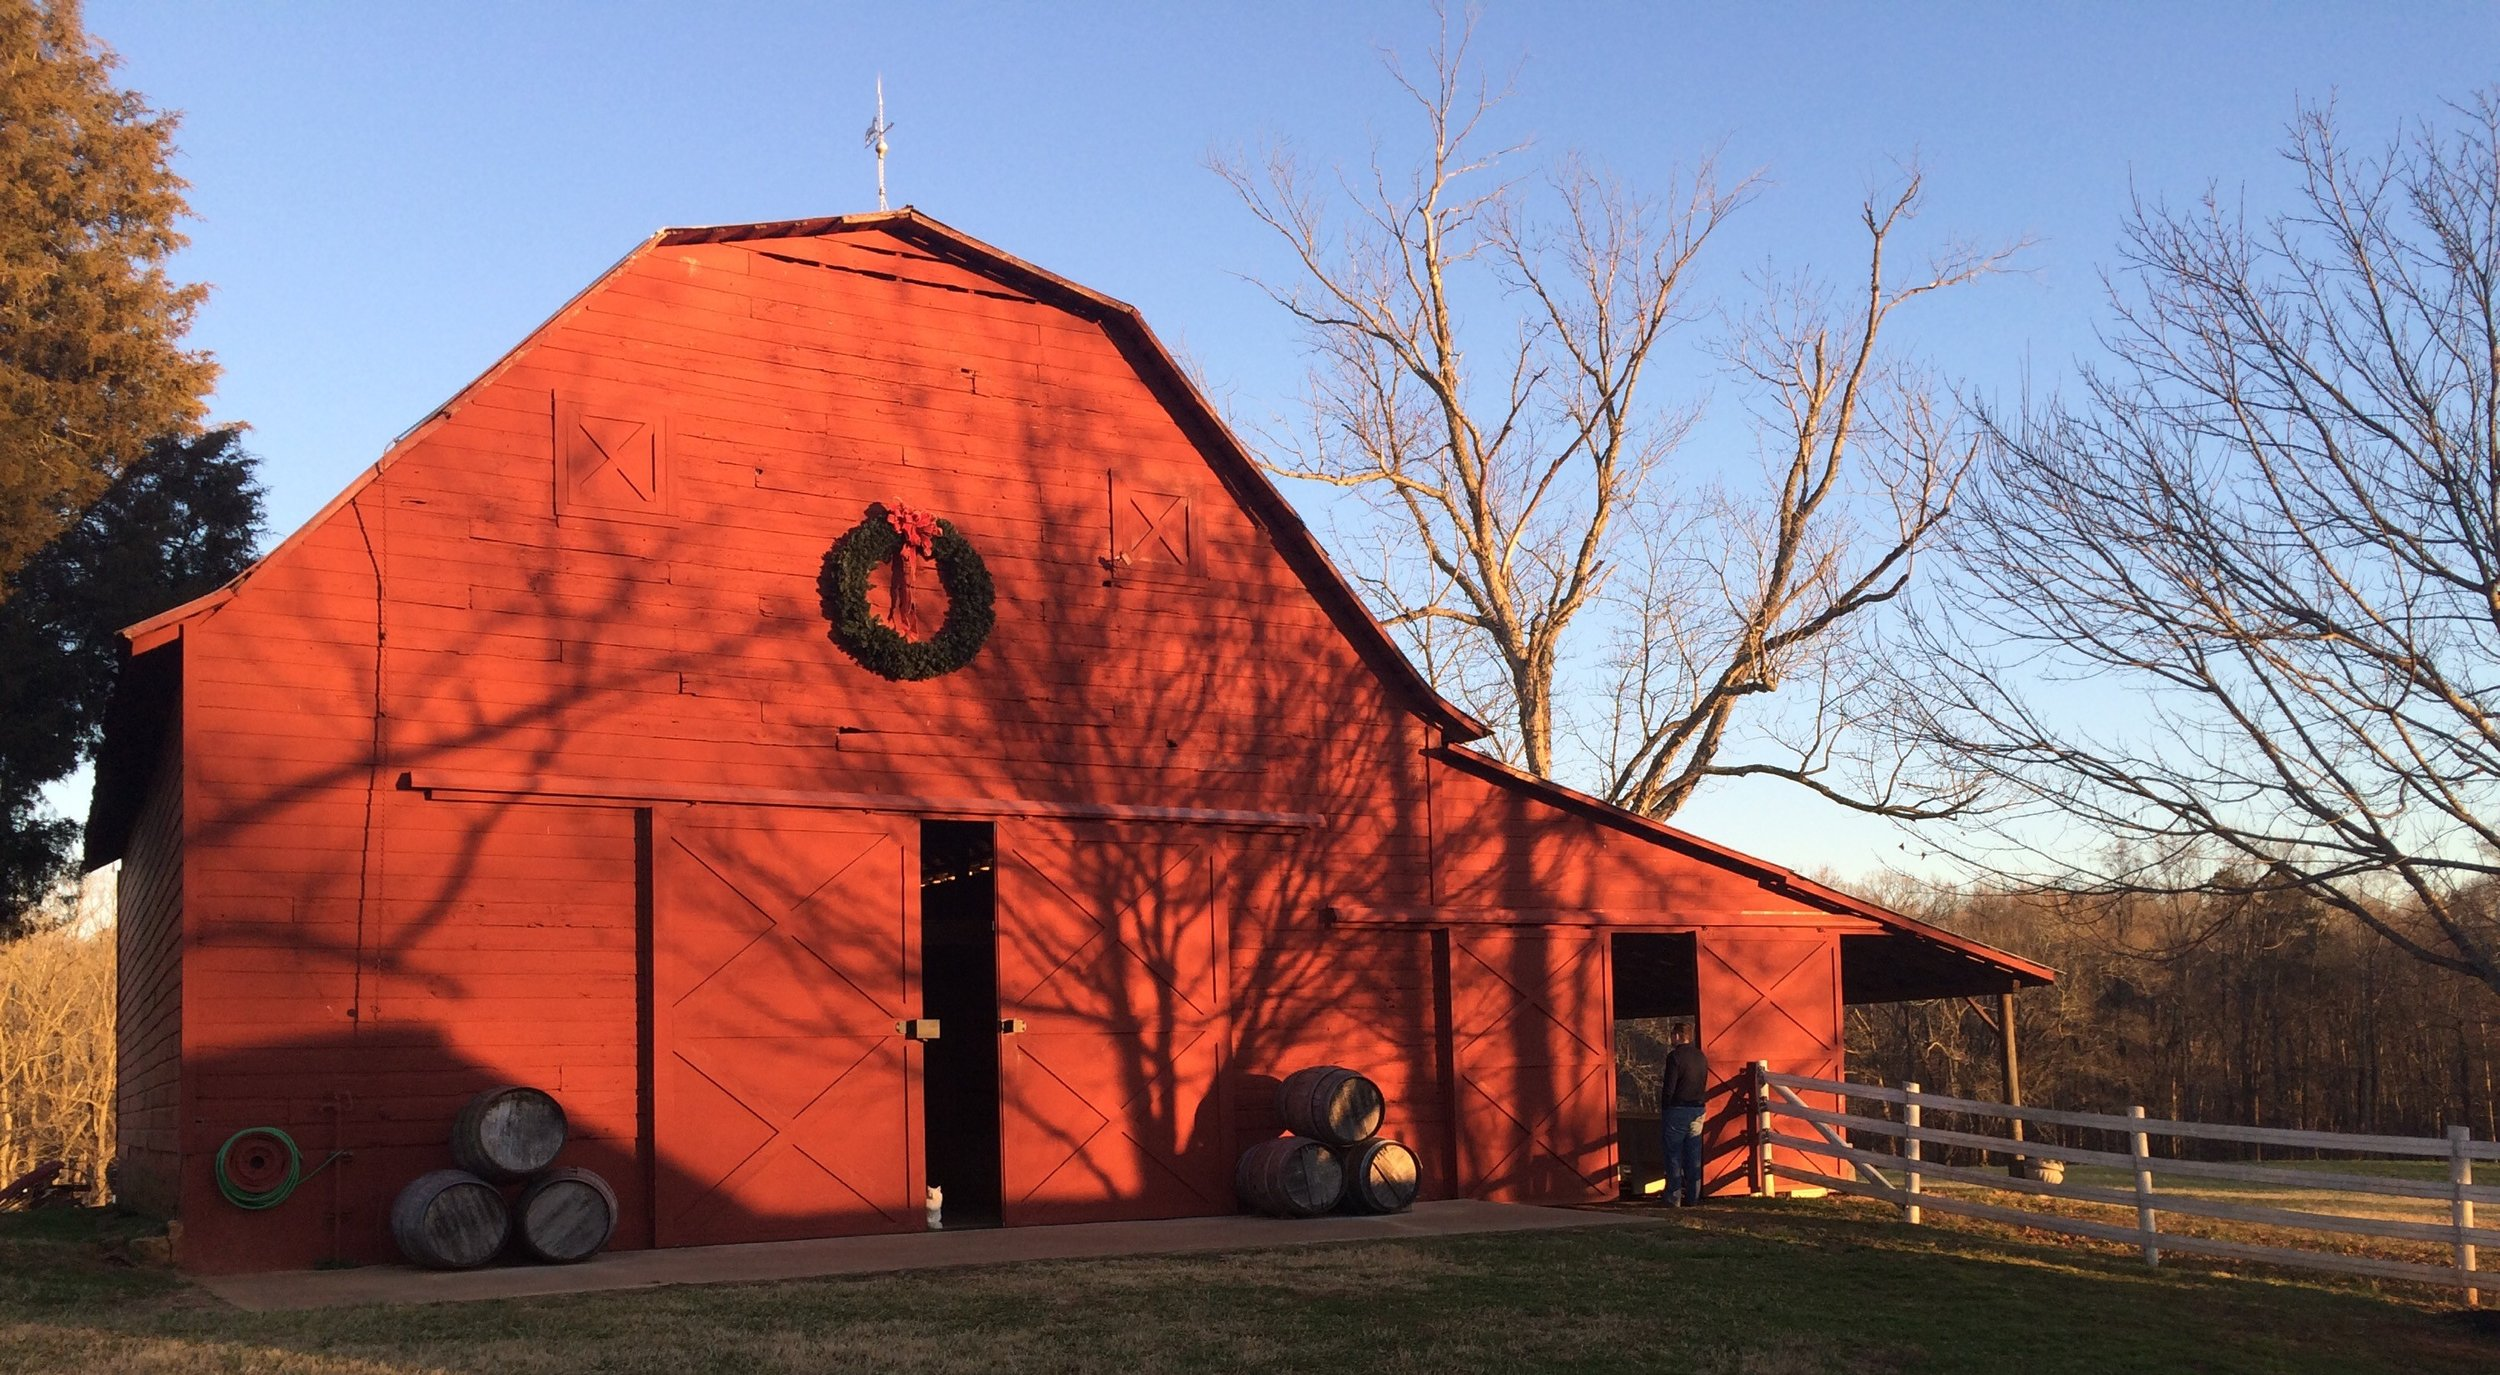 One of the best examples of a mule barn in Cleveland & Gaston counties